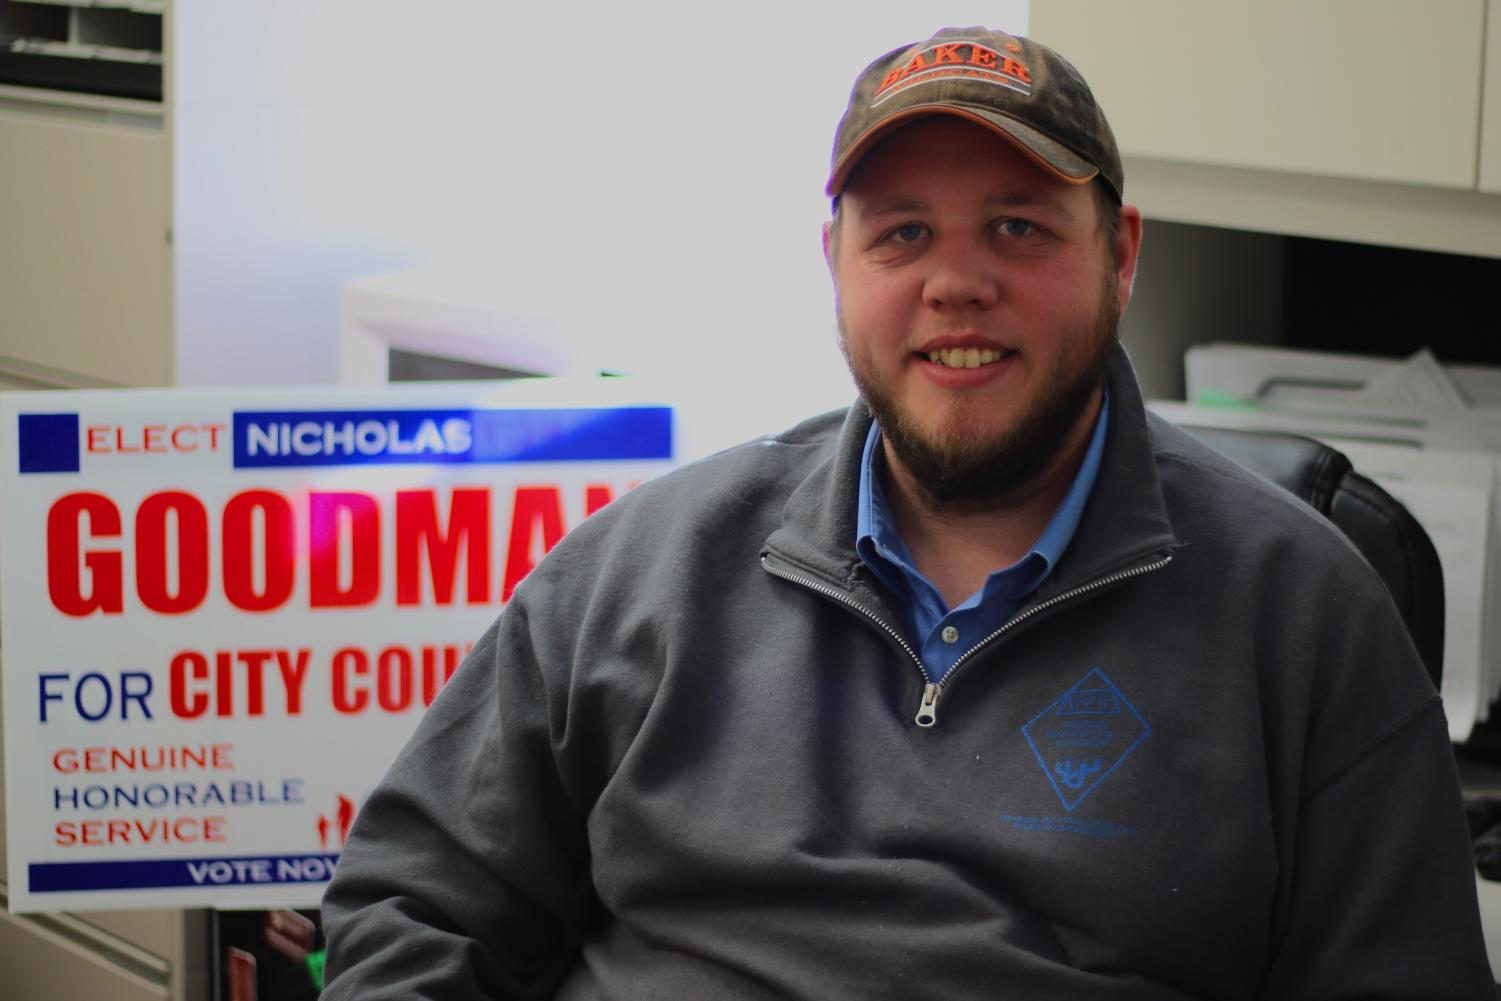 Director of Residence Life and Conference Services Nicholas Goodman runs for city council. The results of the elections on Nov. 5 show Goodman with 122 votes placing him in last place.